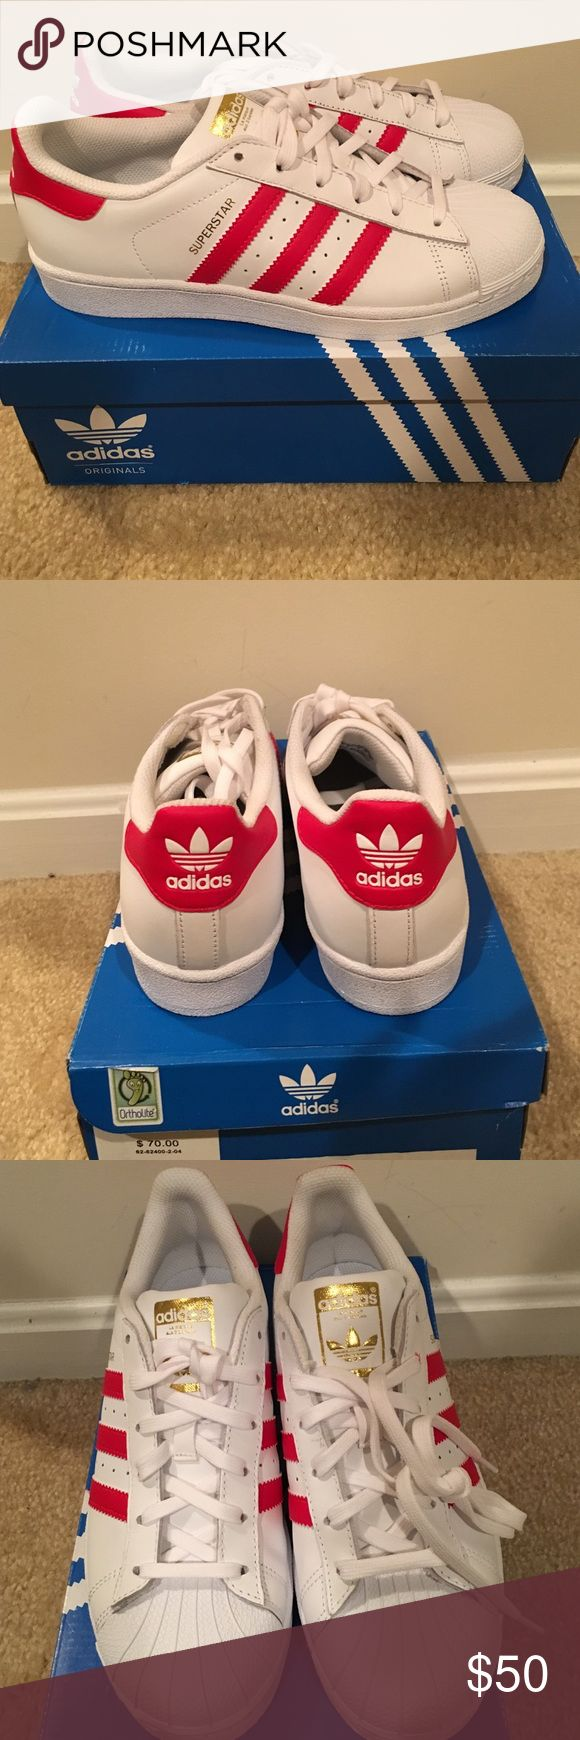 RED AND WHITE AUTHENTIC ADIDAS SUPERSTARS. BRAND NEW, NEVER BEEN WORN! They retail for at least $70, so this is a steal!! ;-). This classic kick will have your '90's inspired street style on lock! Let me know if you're interested! adidas Shoes Sneakers